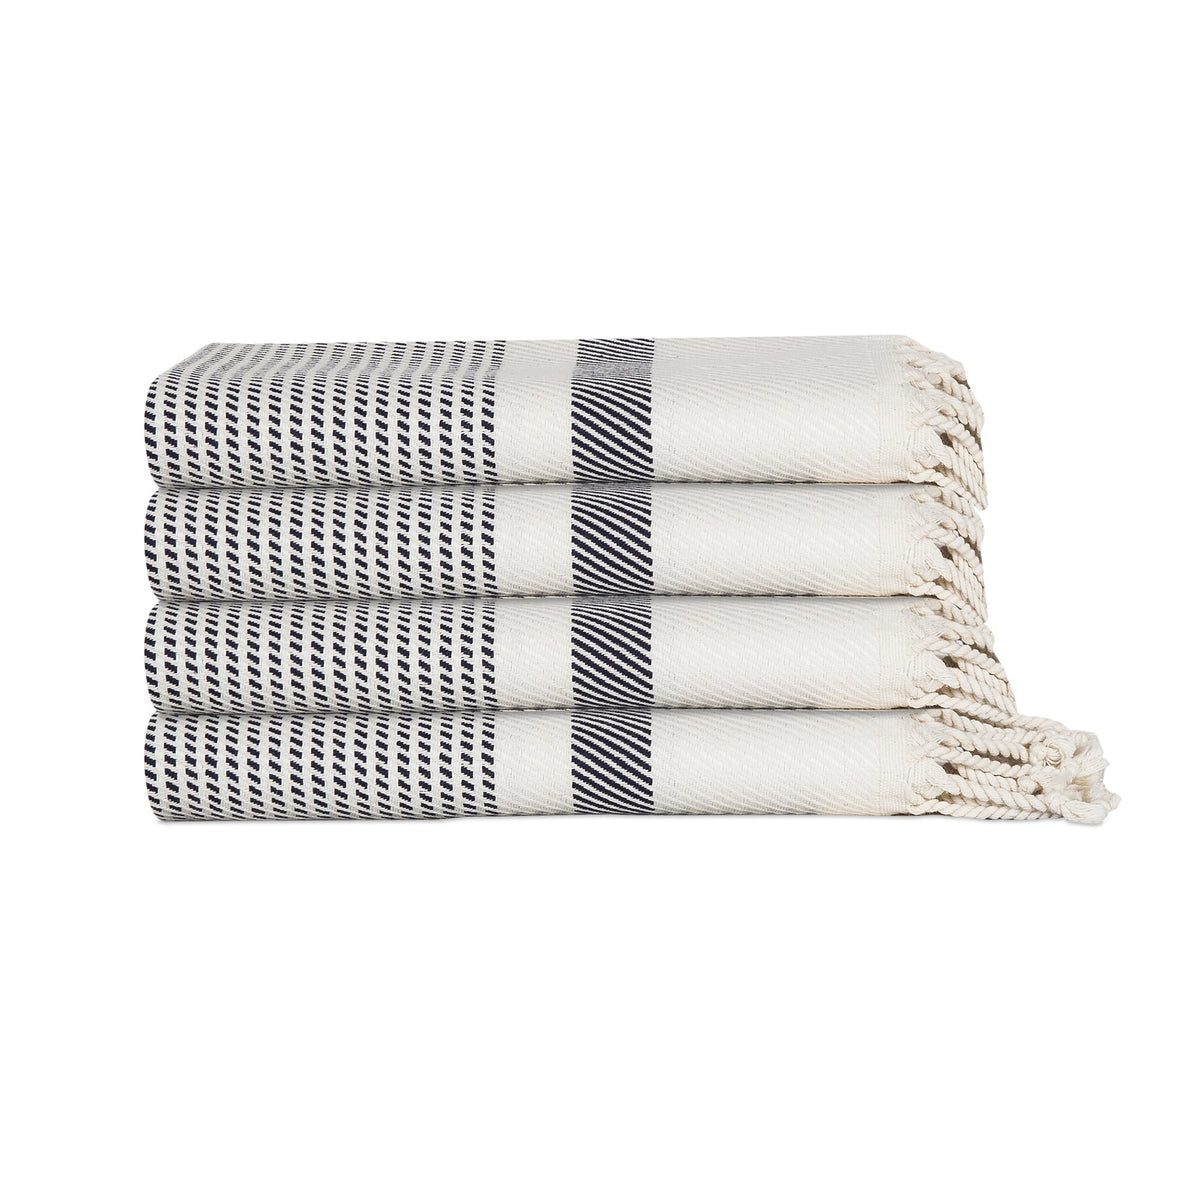 Pixel Turkish Hand / Kitchen Towel Bundle